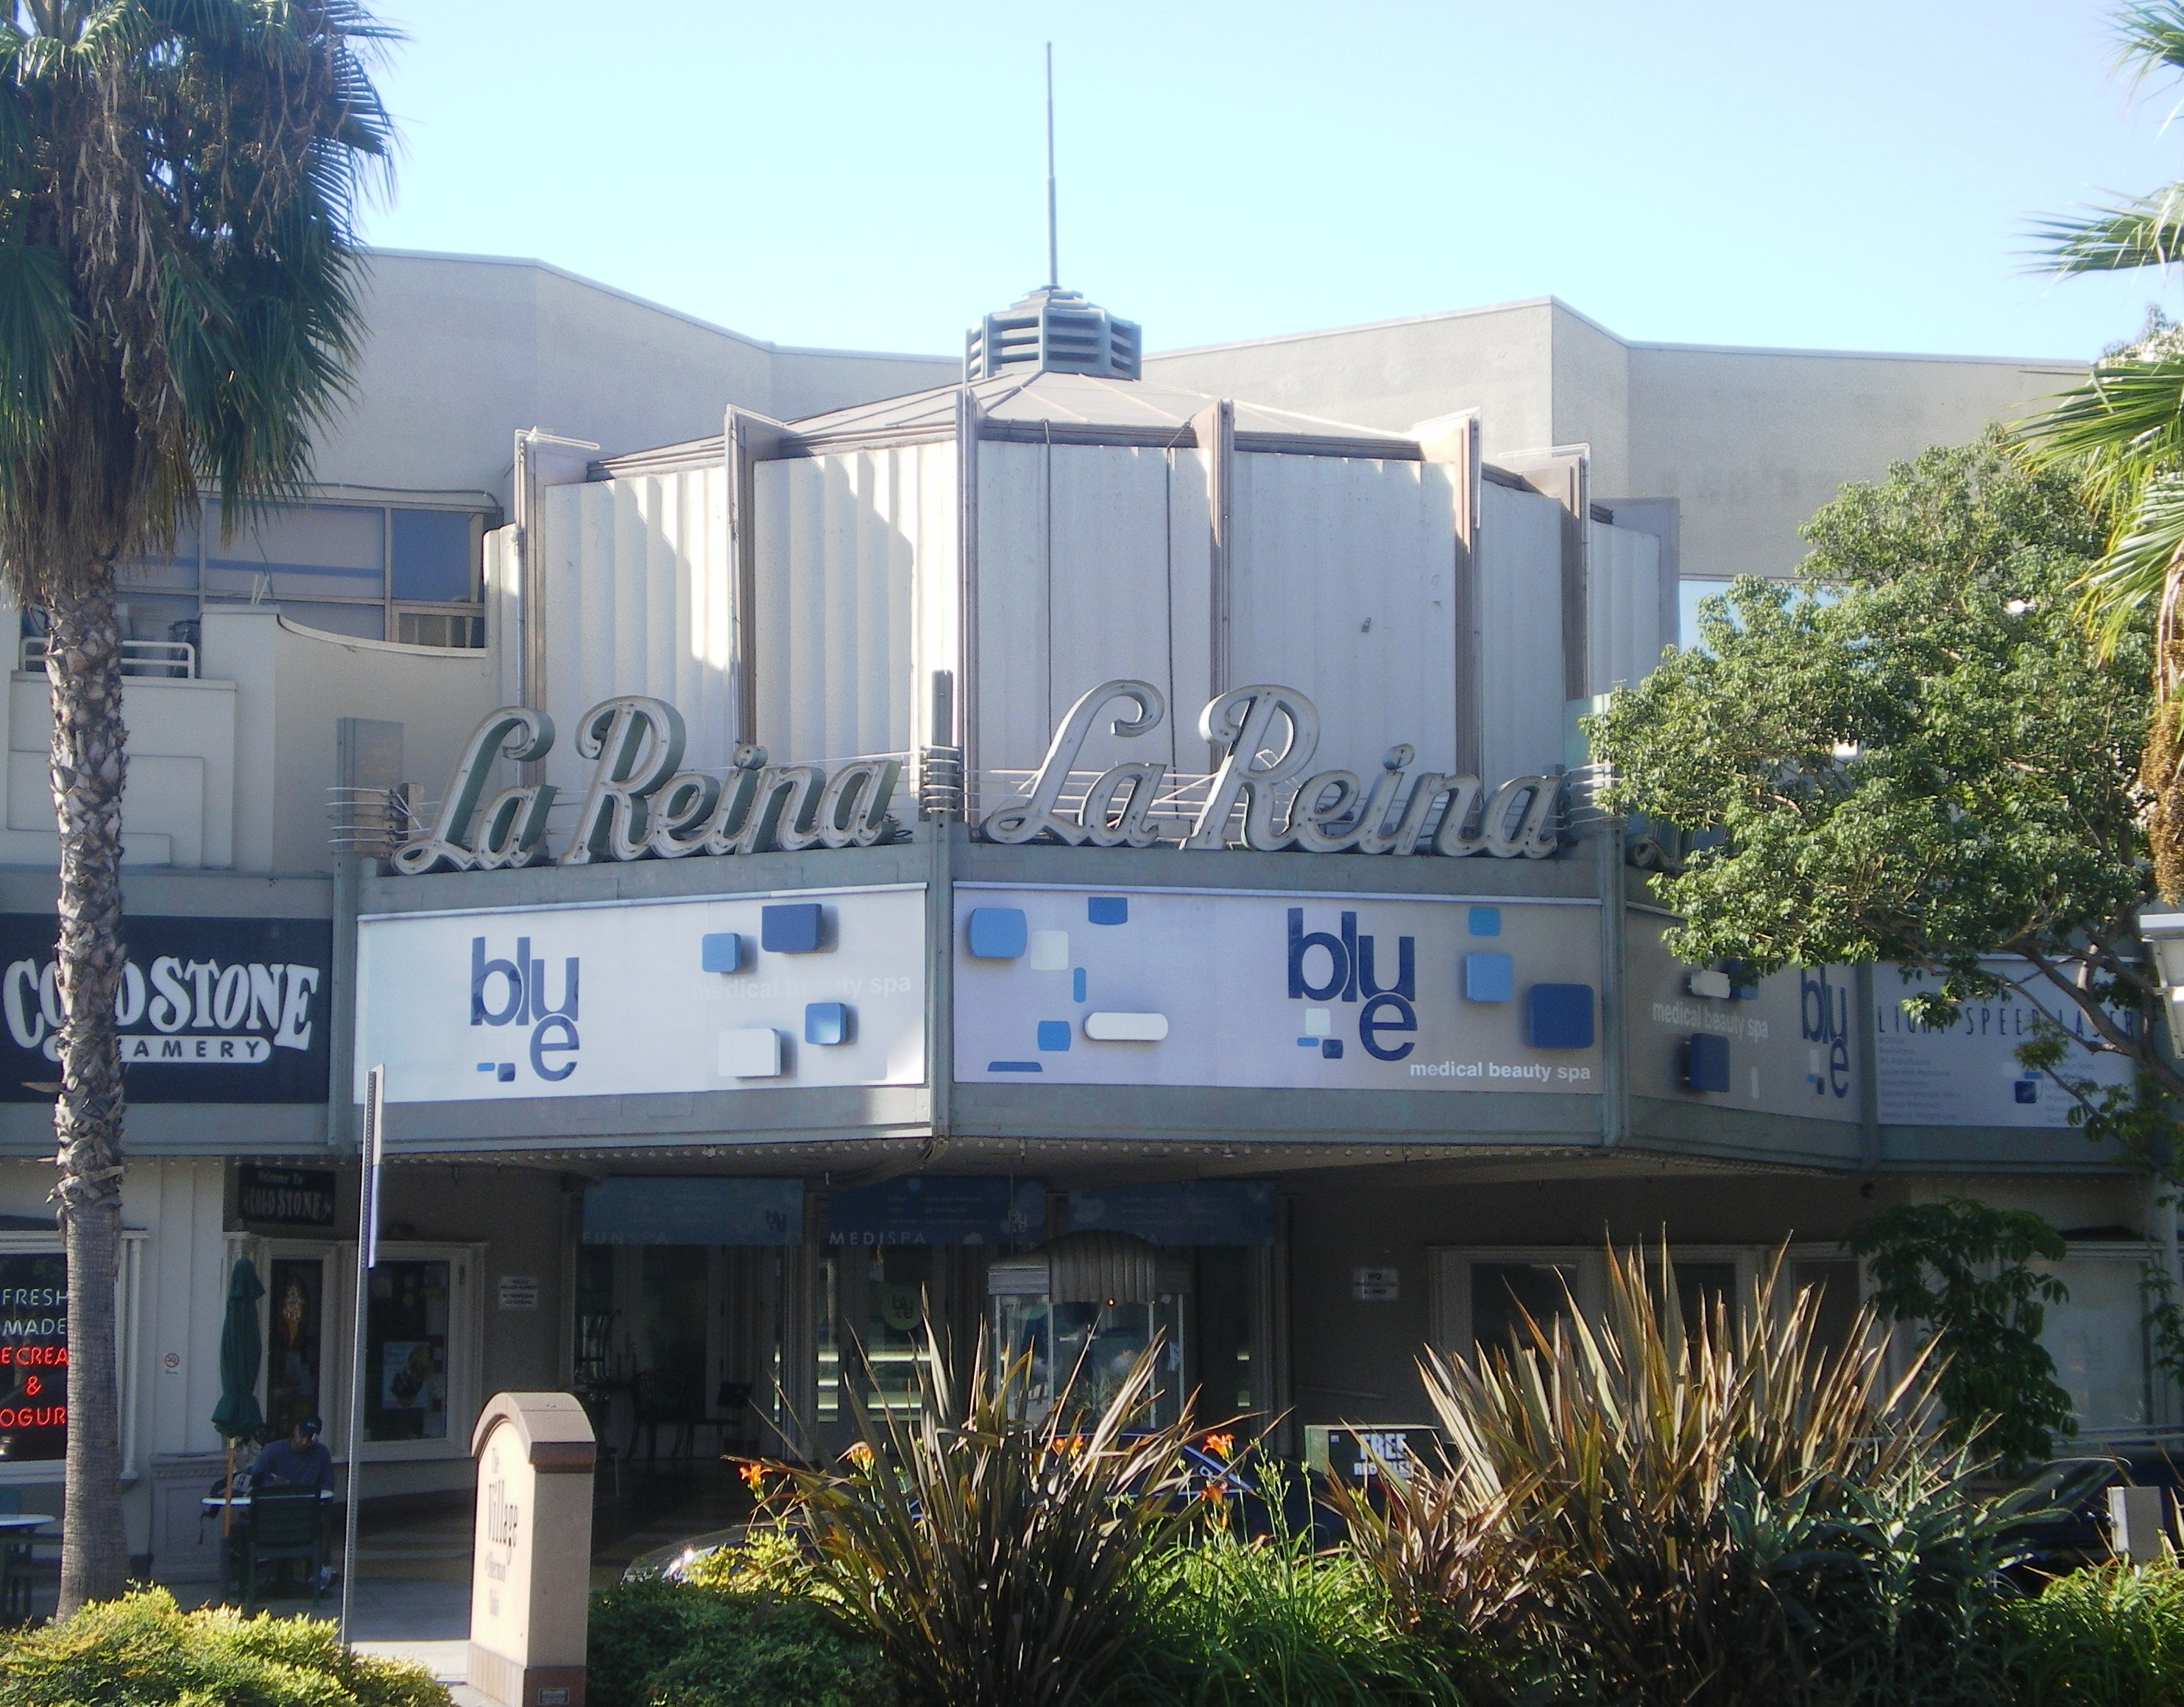 A thriving neighborhood in the San Fernando Valley region of Los Angeles, Sherman Oaks is located 16 miles northwest of downtown Los Angeles and just 12 miles northeast of Santa Monica, housing the famous Santa Monica Pier.